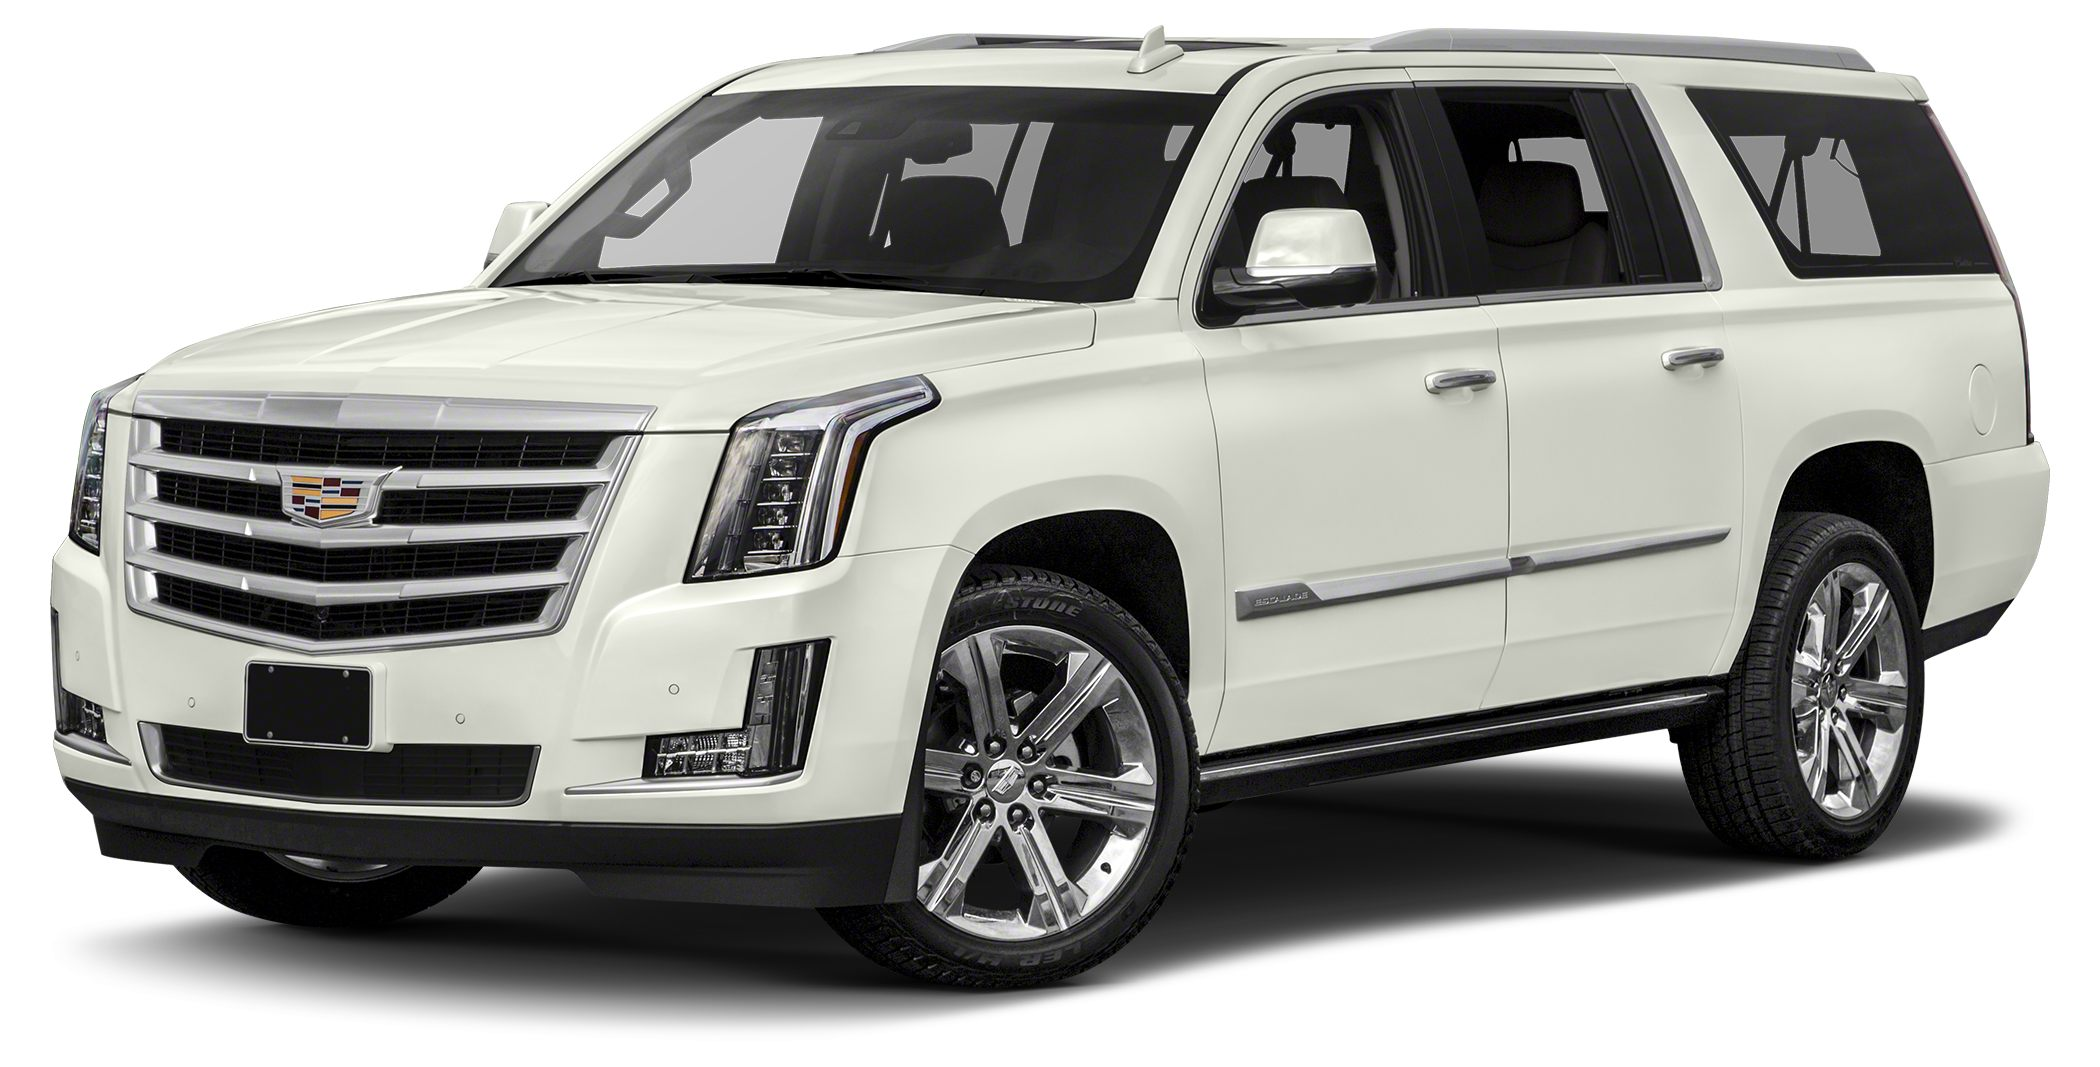 2018 Cadillac Escalade ESV Premium Luxury Miles 5Color Crystal White Stock 180221 VIN 1GYS3J